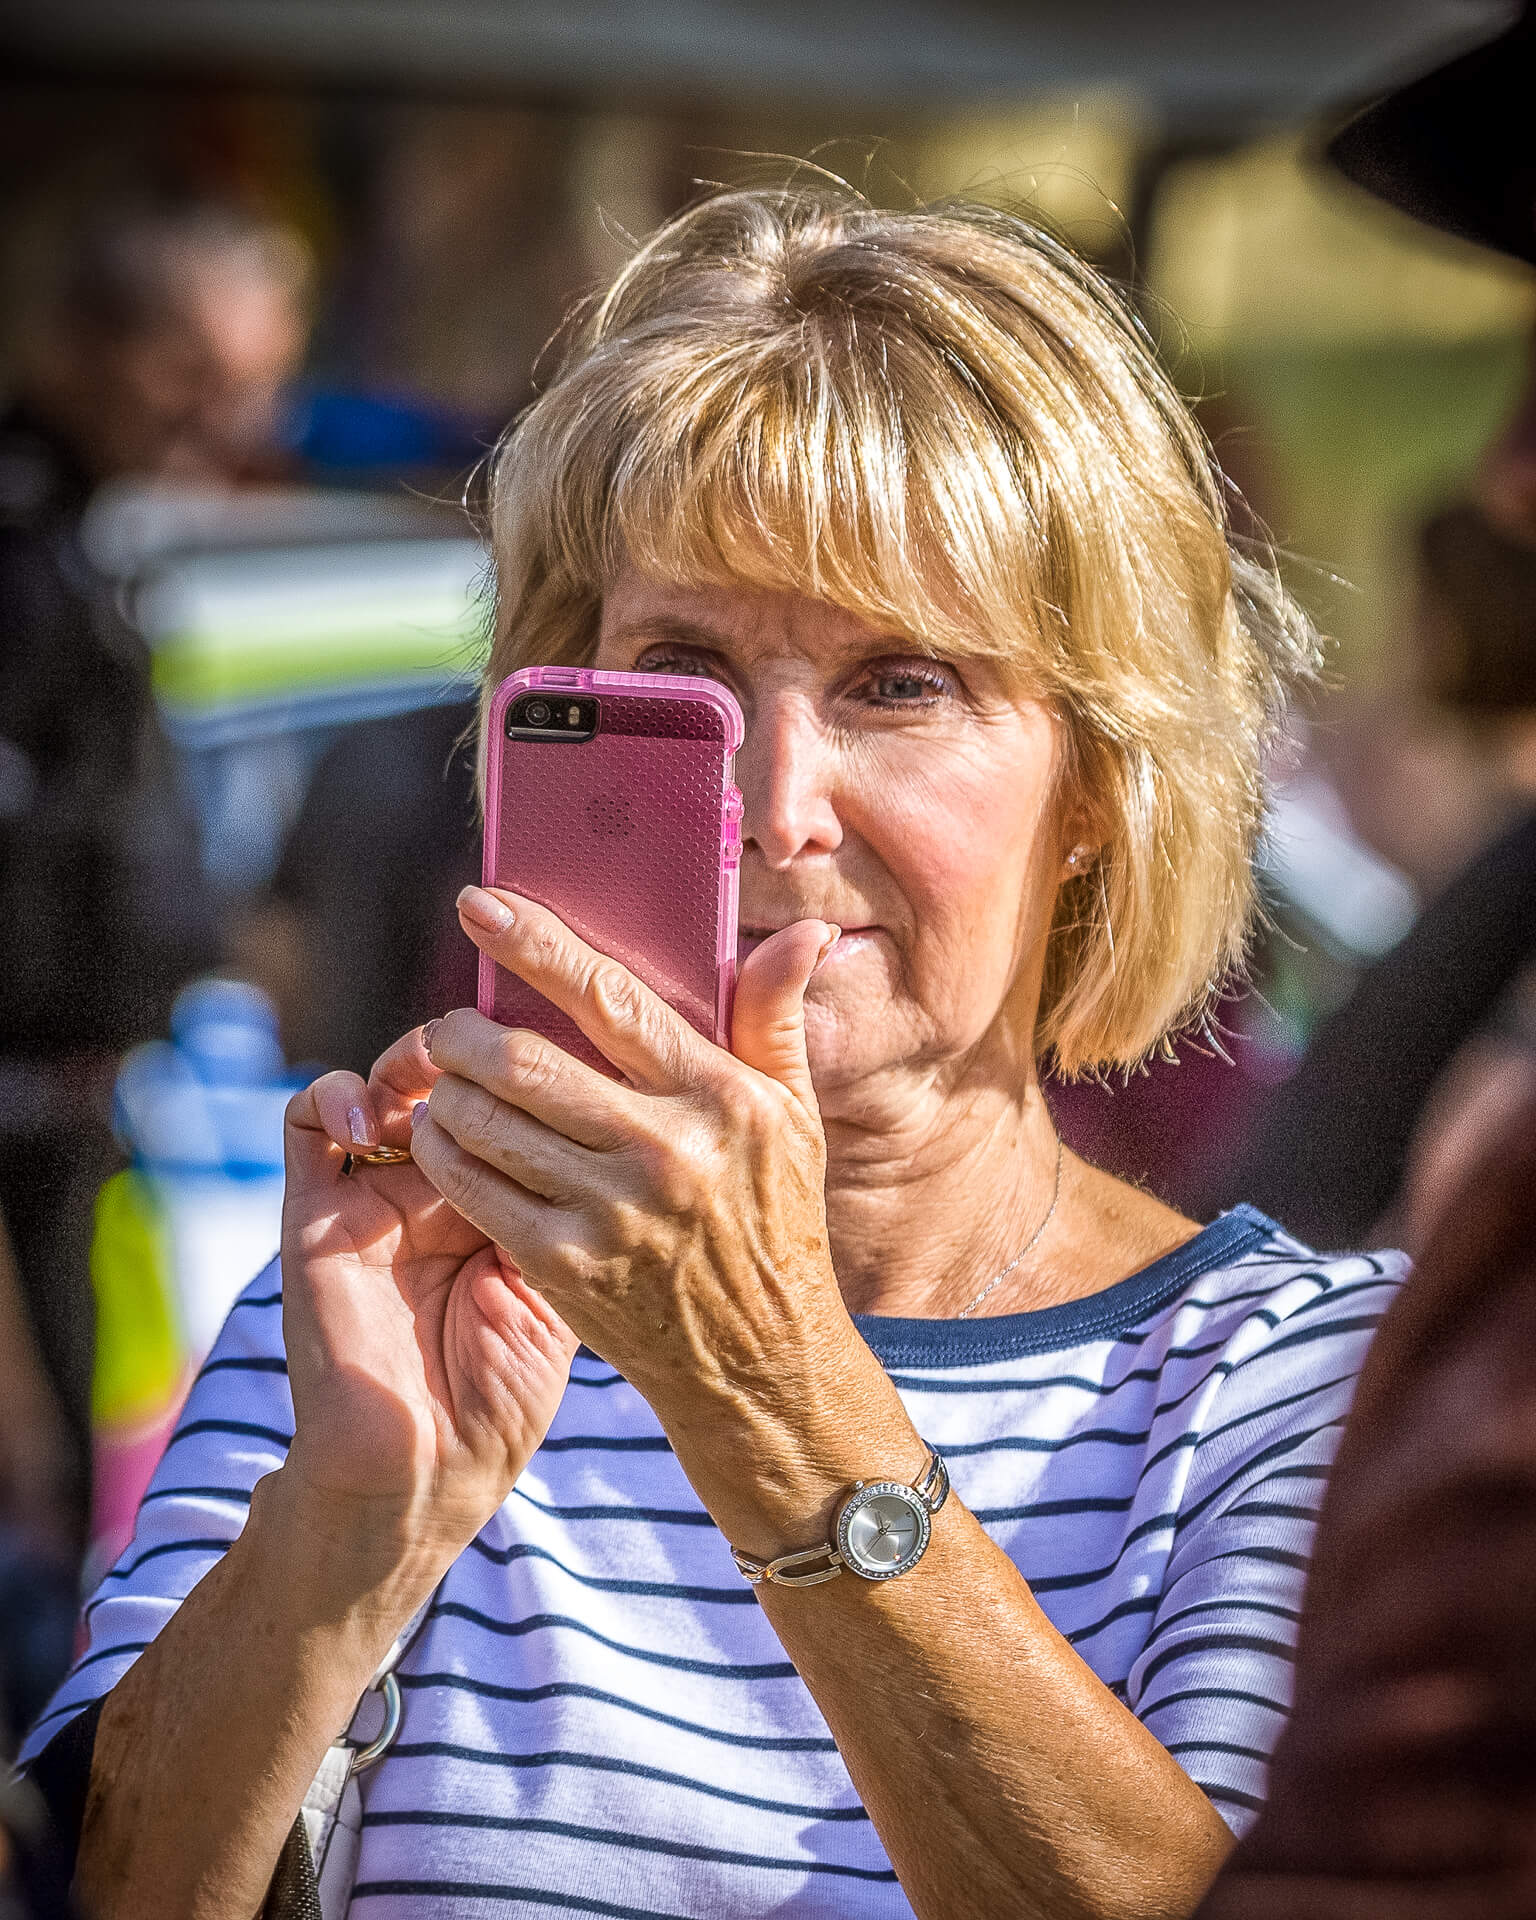 A colour head and chest image of a middle aged lady at Worcester Pride taking a selfie of herself with her pink coloured mobile phone. She has short blonde hair and she wears a white top with blue stripes, she has a look of concentration on her face.